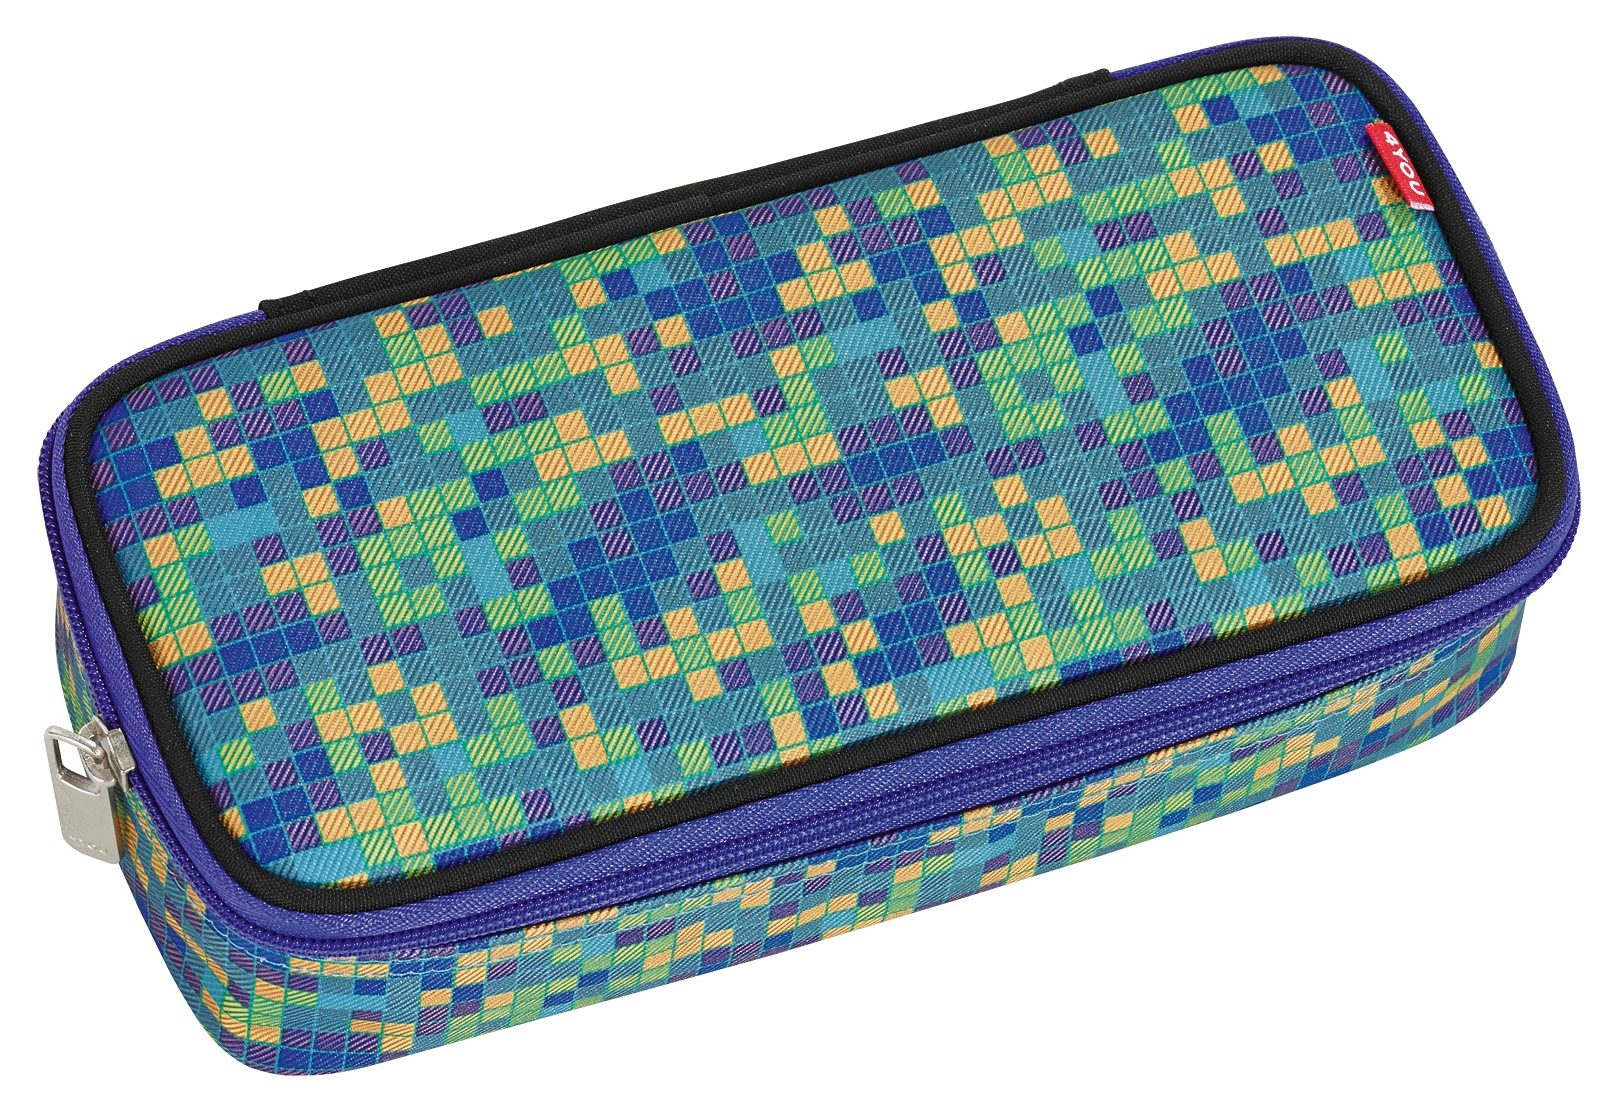 4YOU Mäppchen mit Geodreieck®, Pixel Smaragd, »Pencil Case«